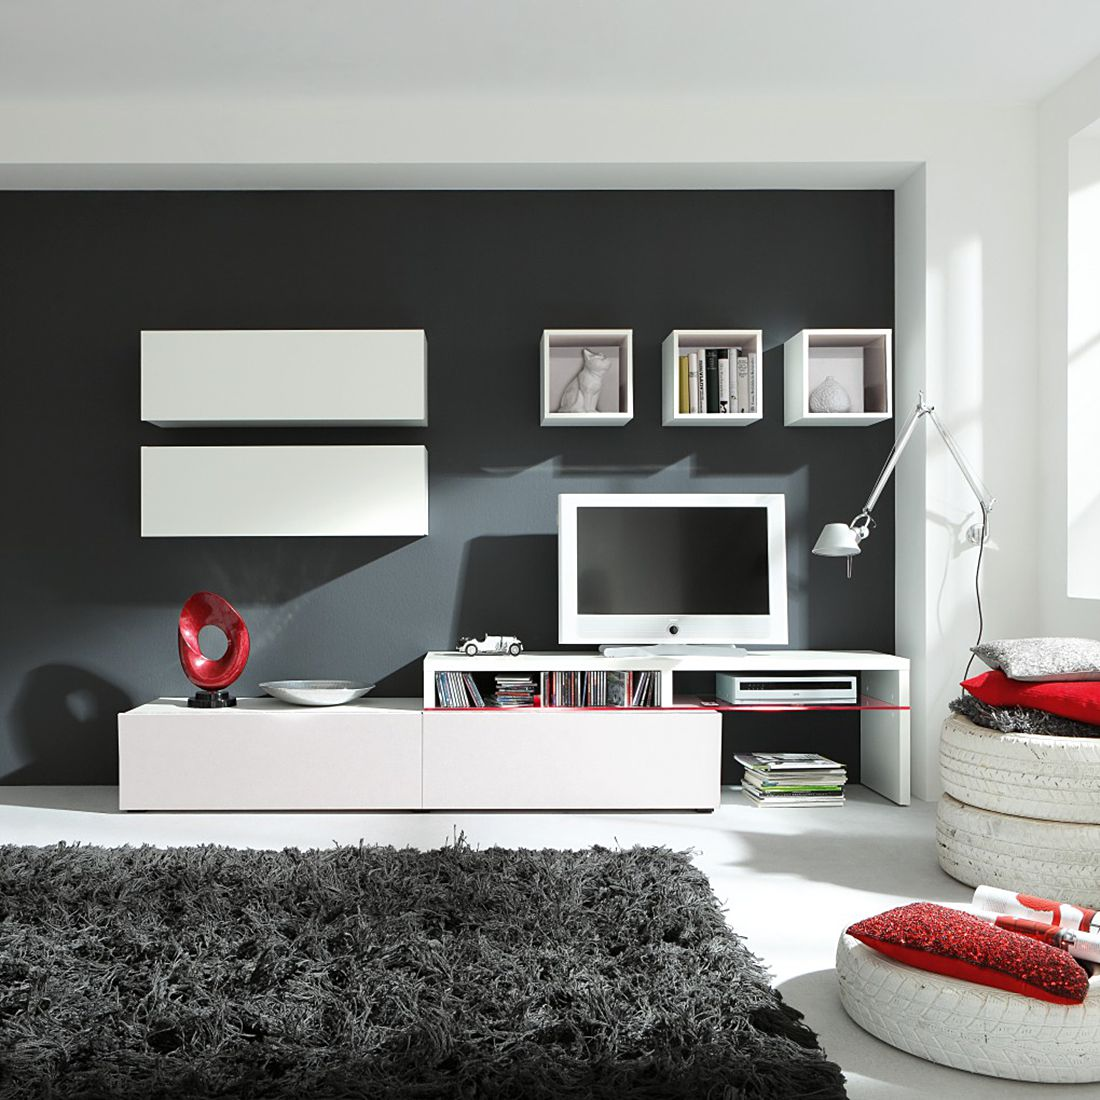 wohnwand colourart 6 teilig wei wei mit beleuchtung. Black Bedroom Furniture Sets. Home Design Ideas